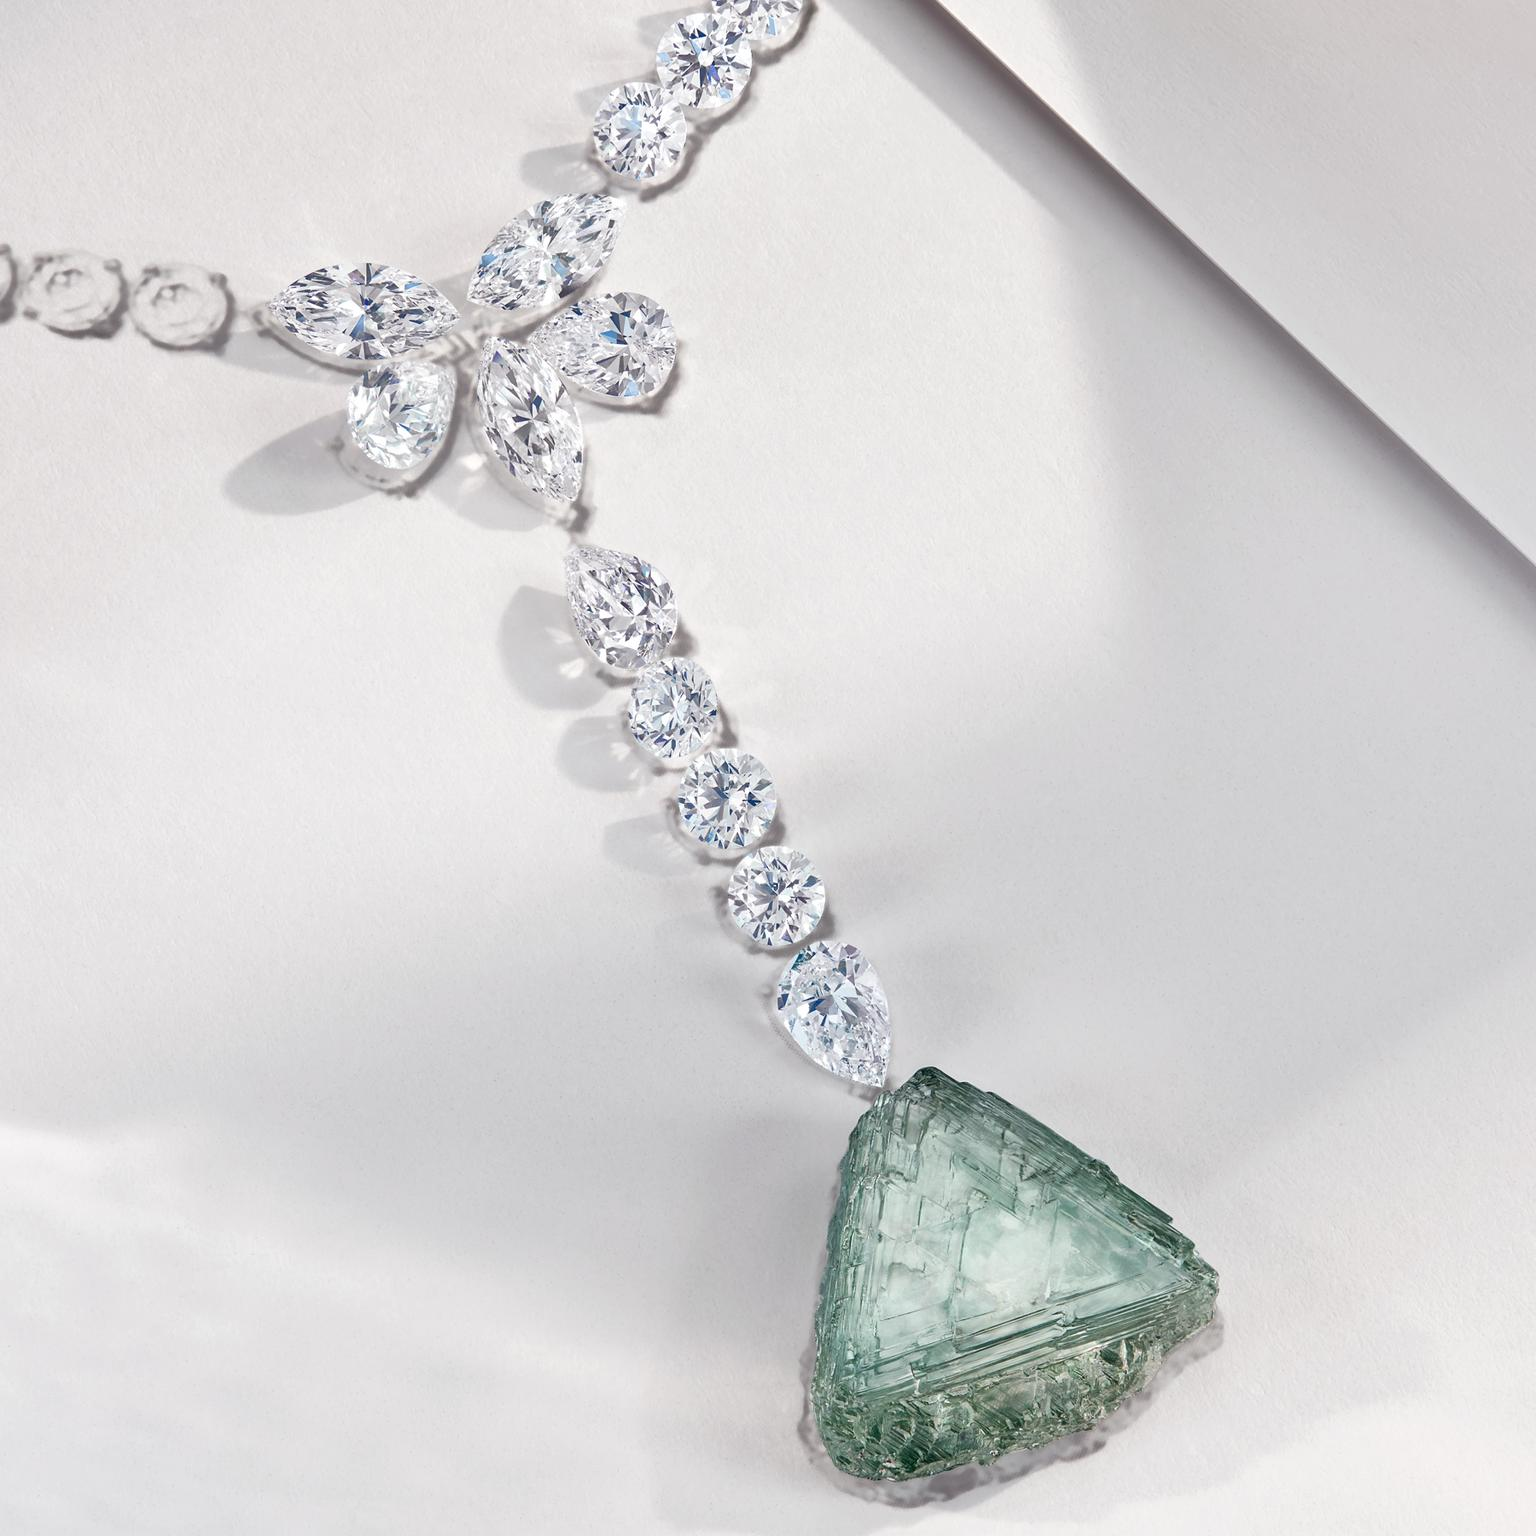 Natural Rough Diamonds - Lotus Collection De Beers